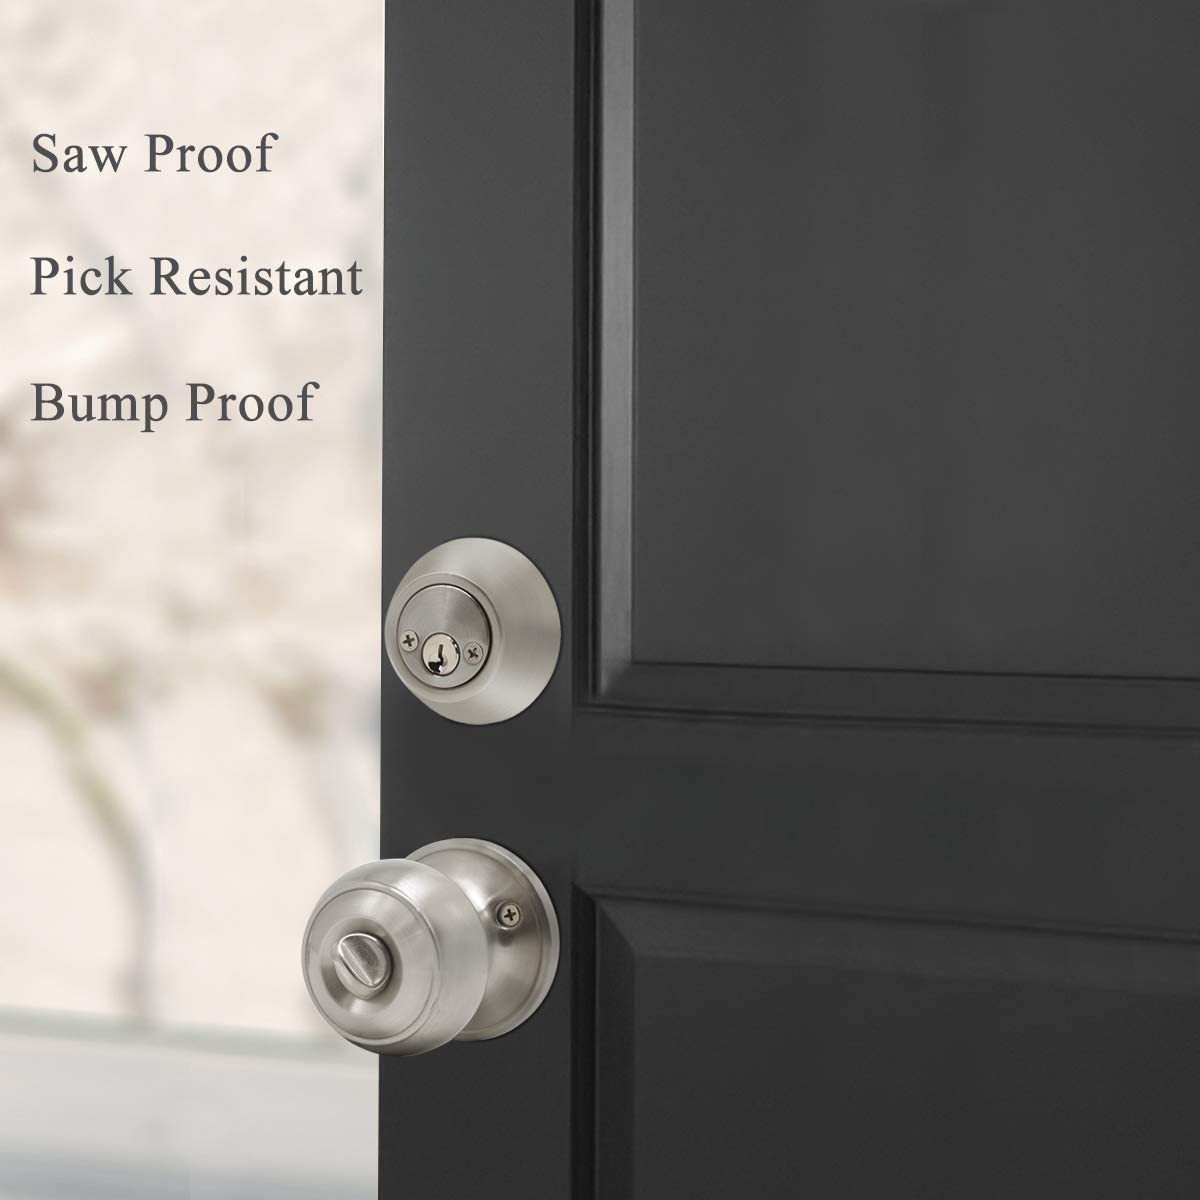 1Pack Oil Rubbed Bronze Probrico Keyed Alike Round Ball Entry Door Knob and Double Cylinder Deadbolt Set